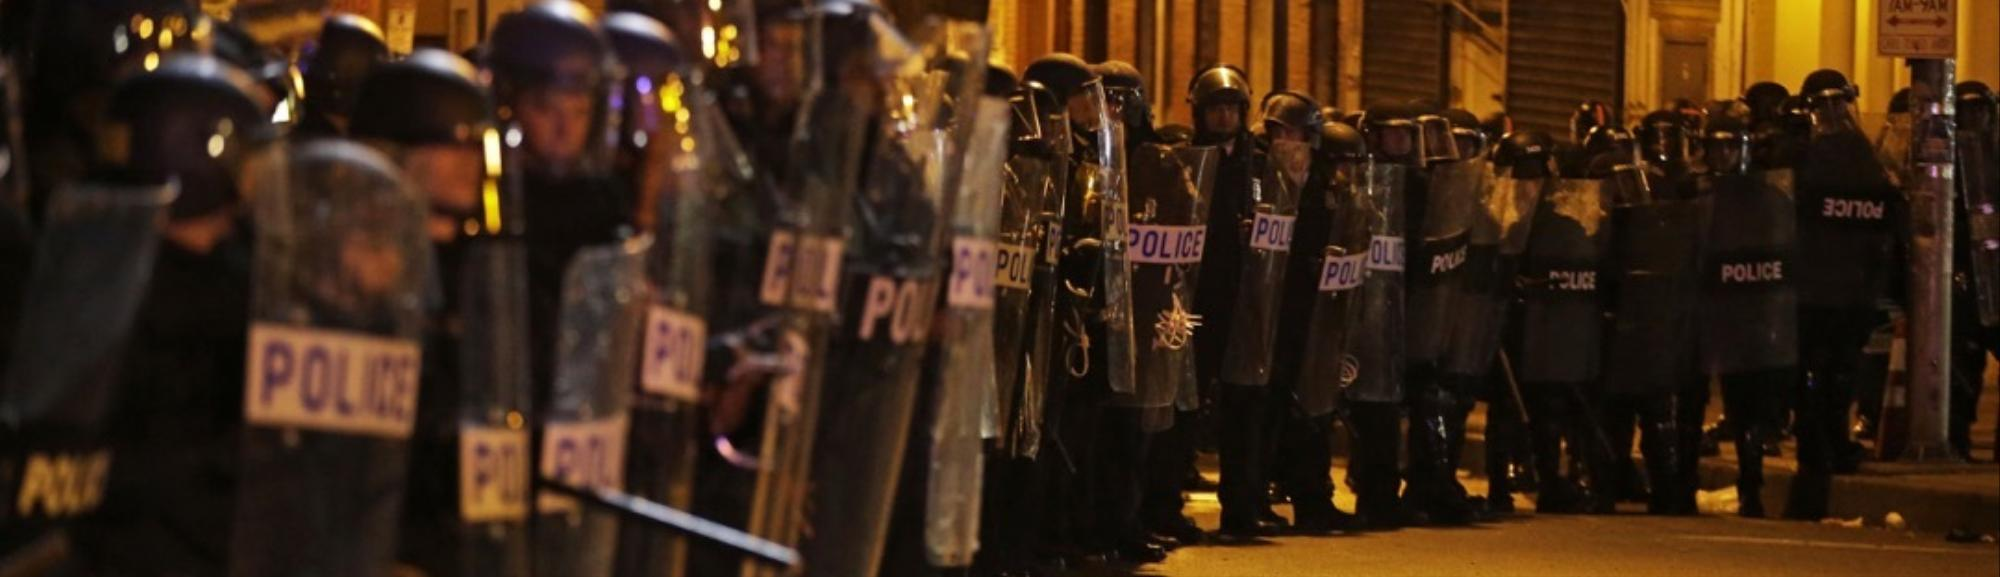 Police Unions' Defense of 'Bad Cops' Draws Criticism in Brutality Debate